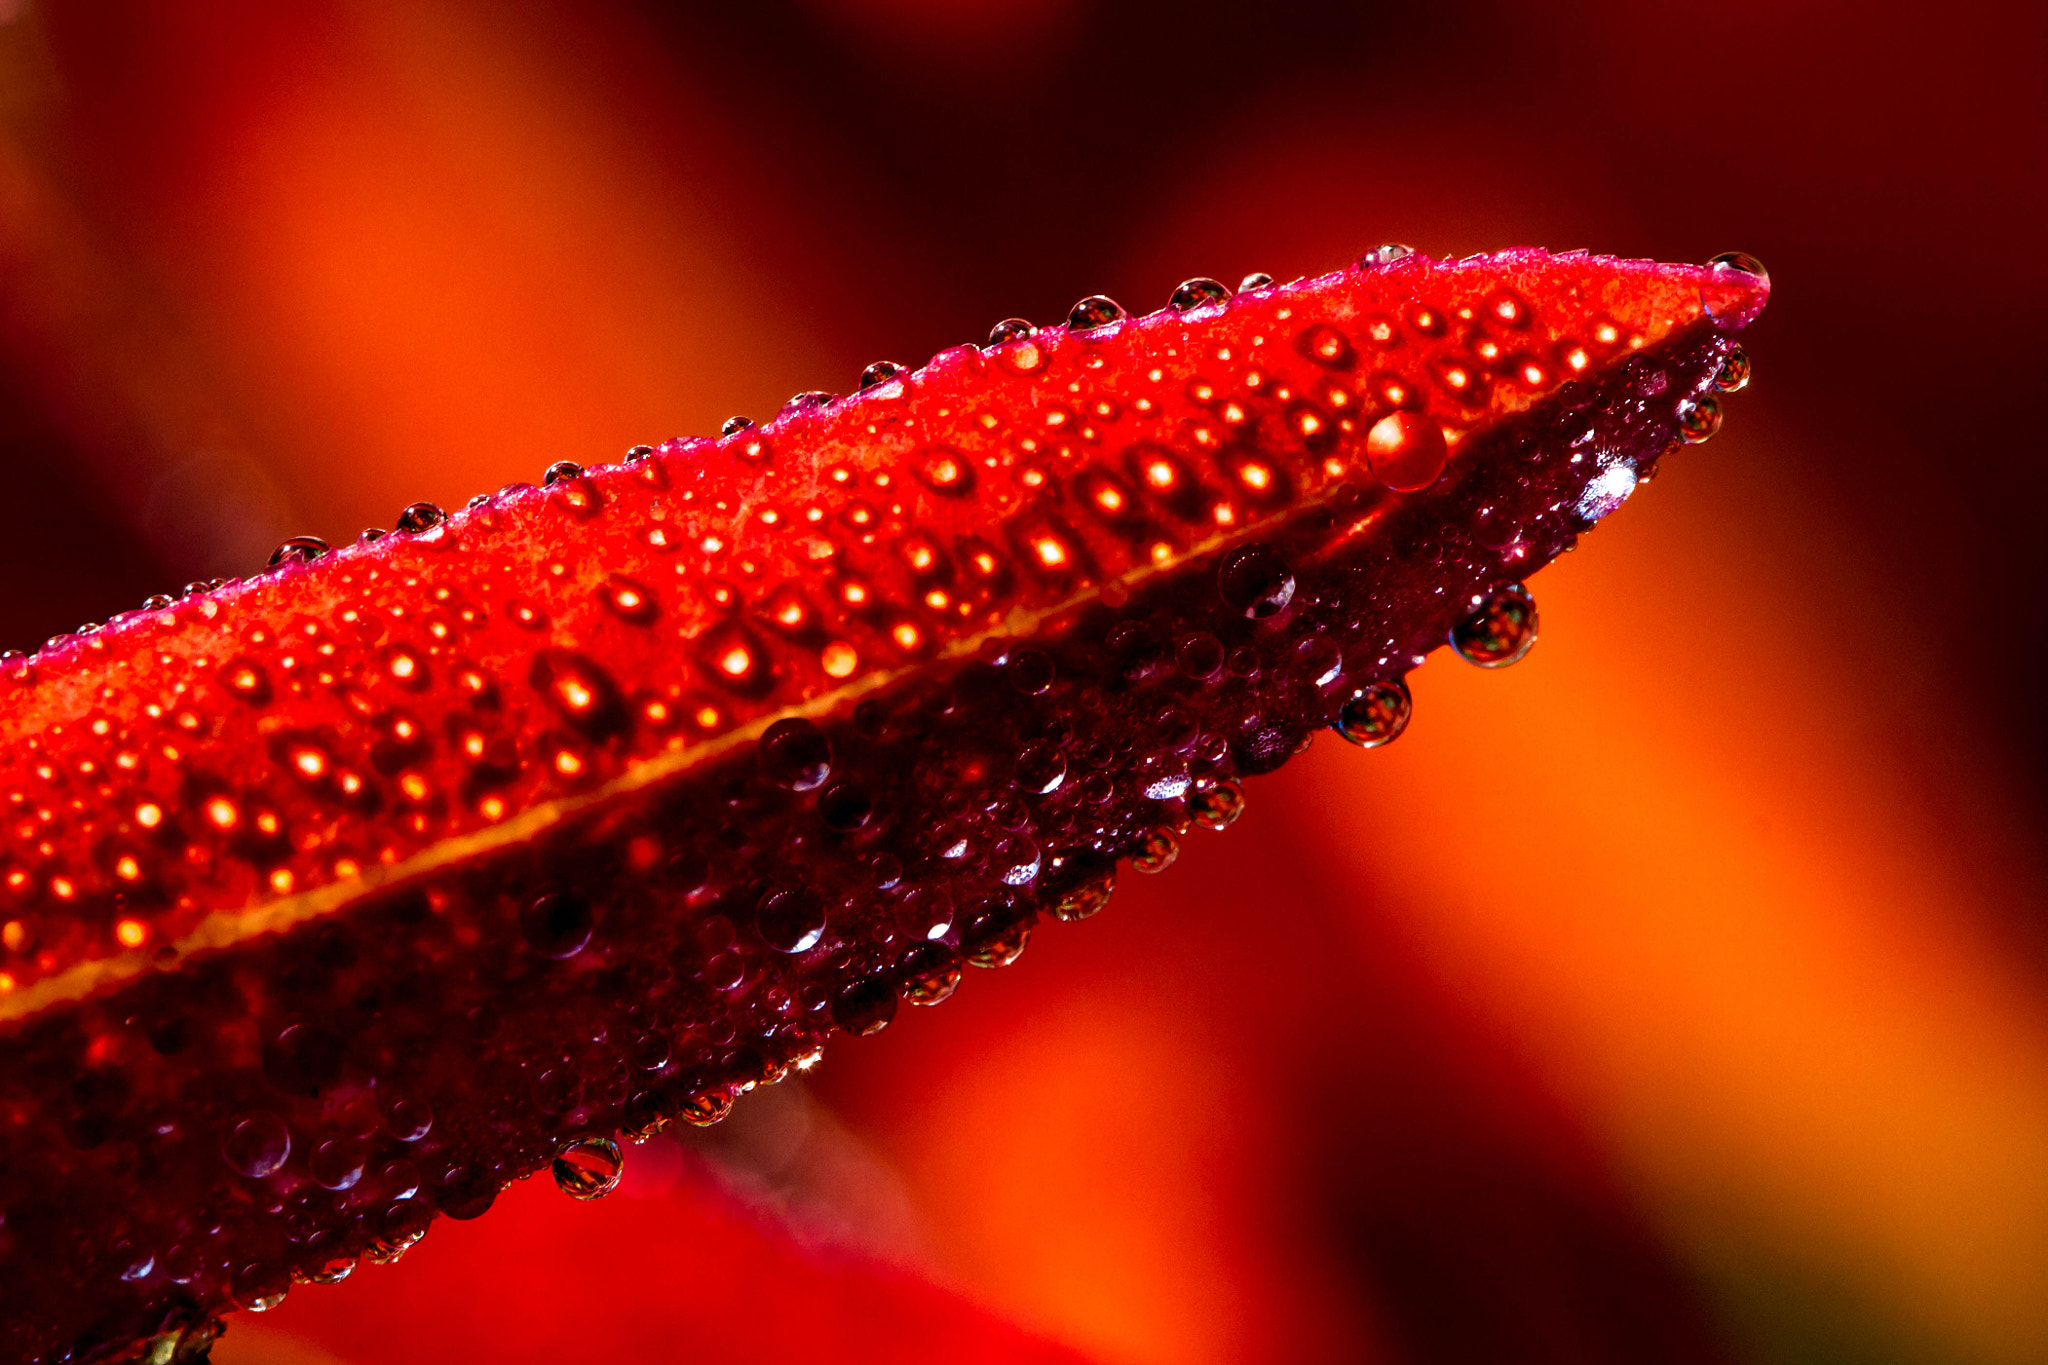 Photograph Drops on fire by Thorsten Scheel on 500px